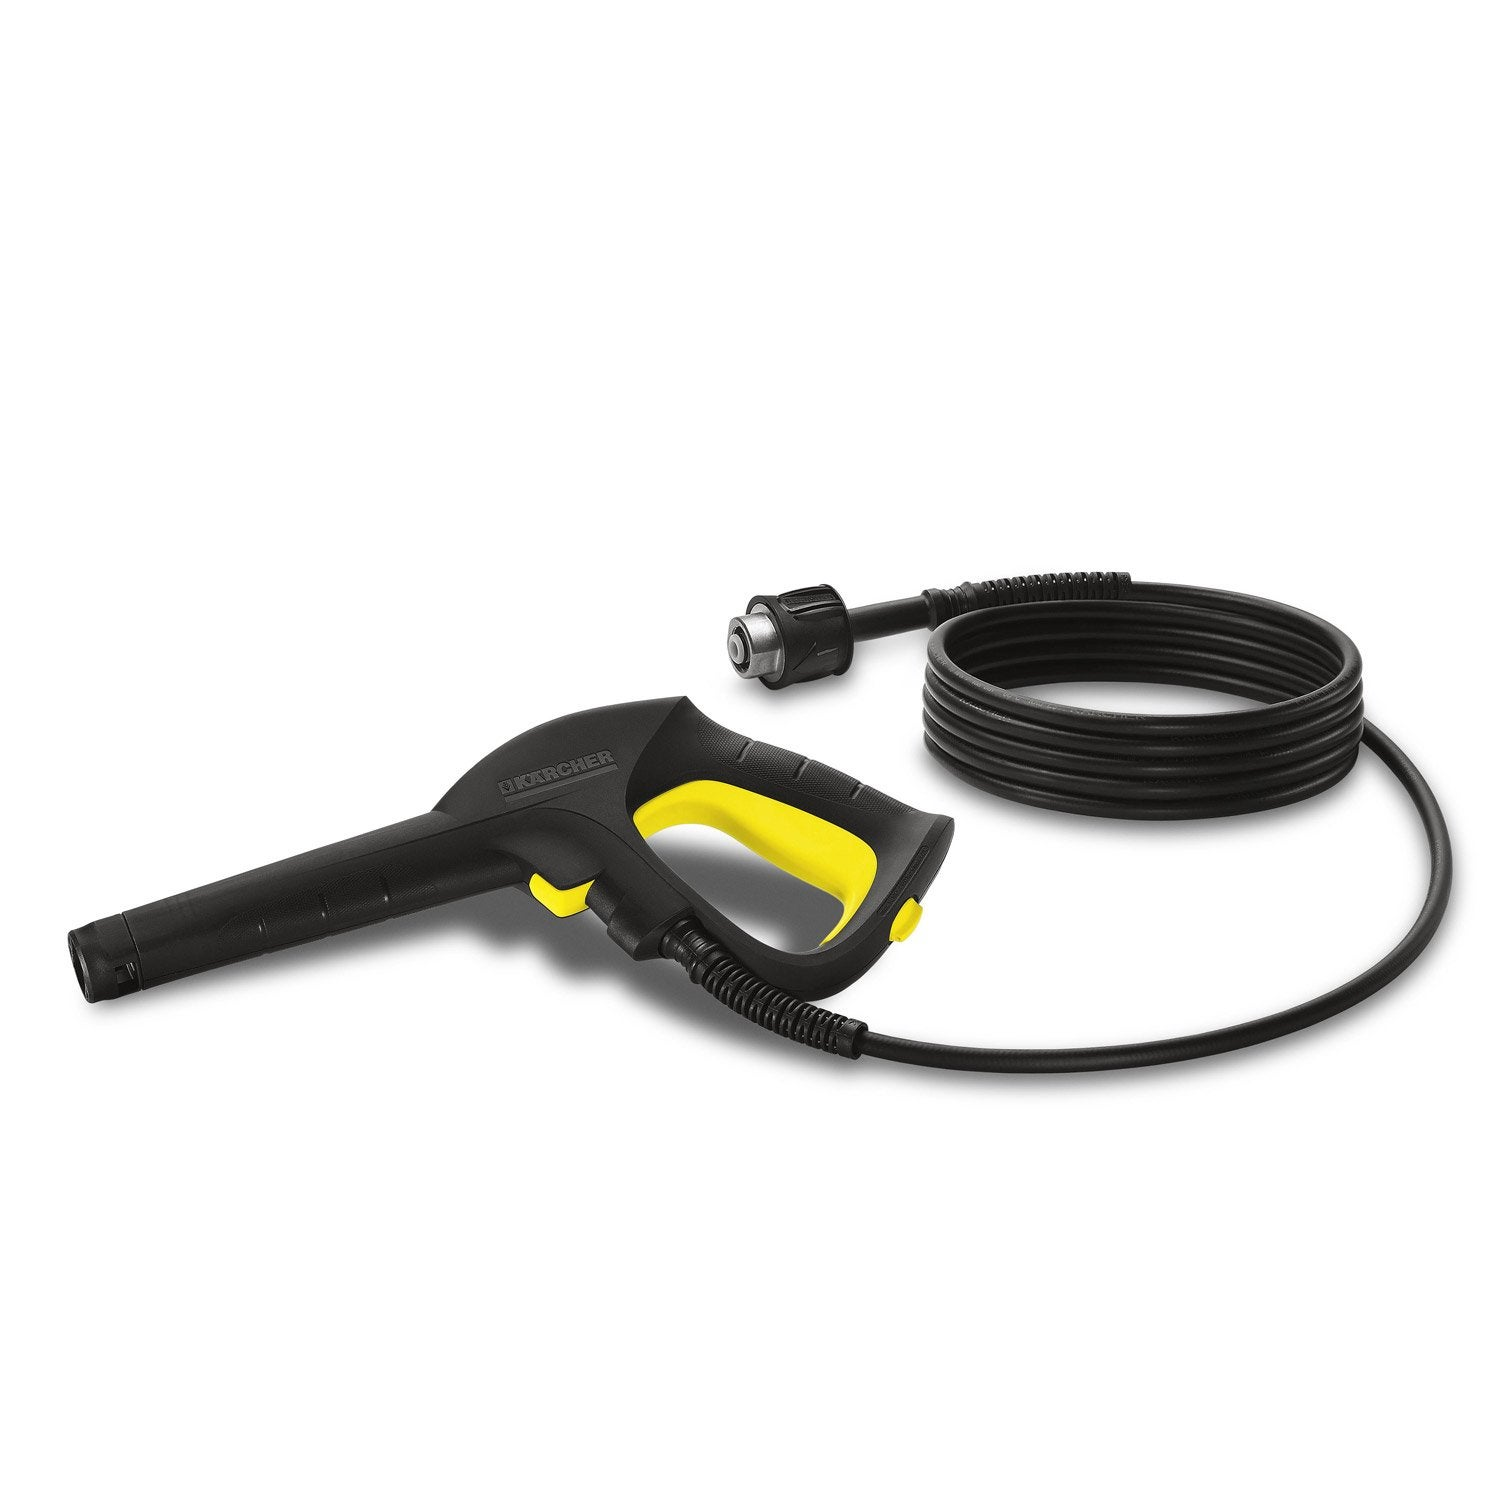 Set poign e flexible karcher leroy merlin - Leroy merlin karcher ...